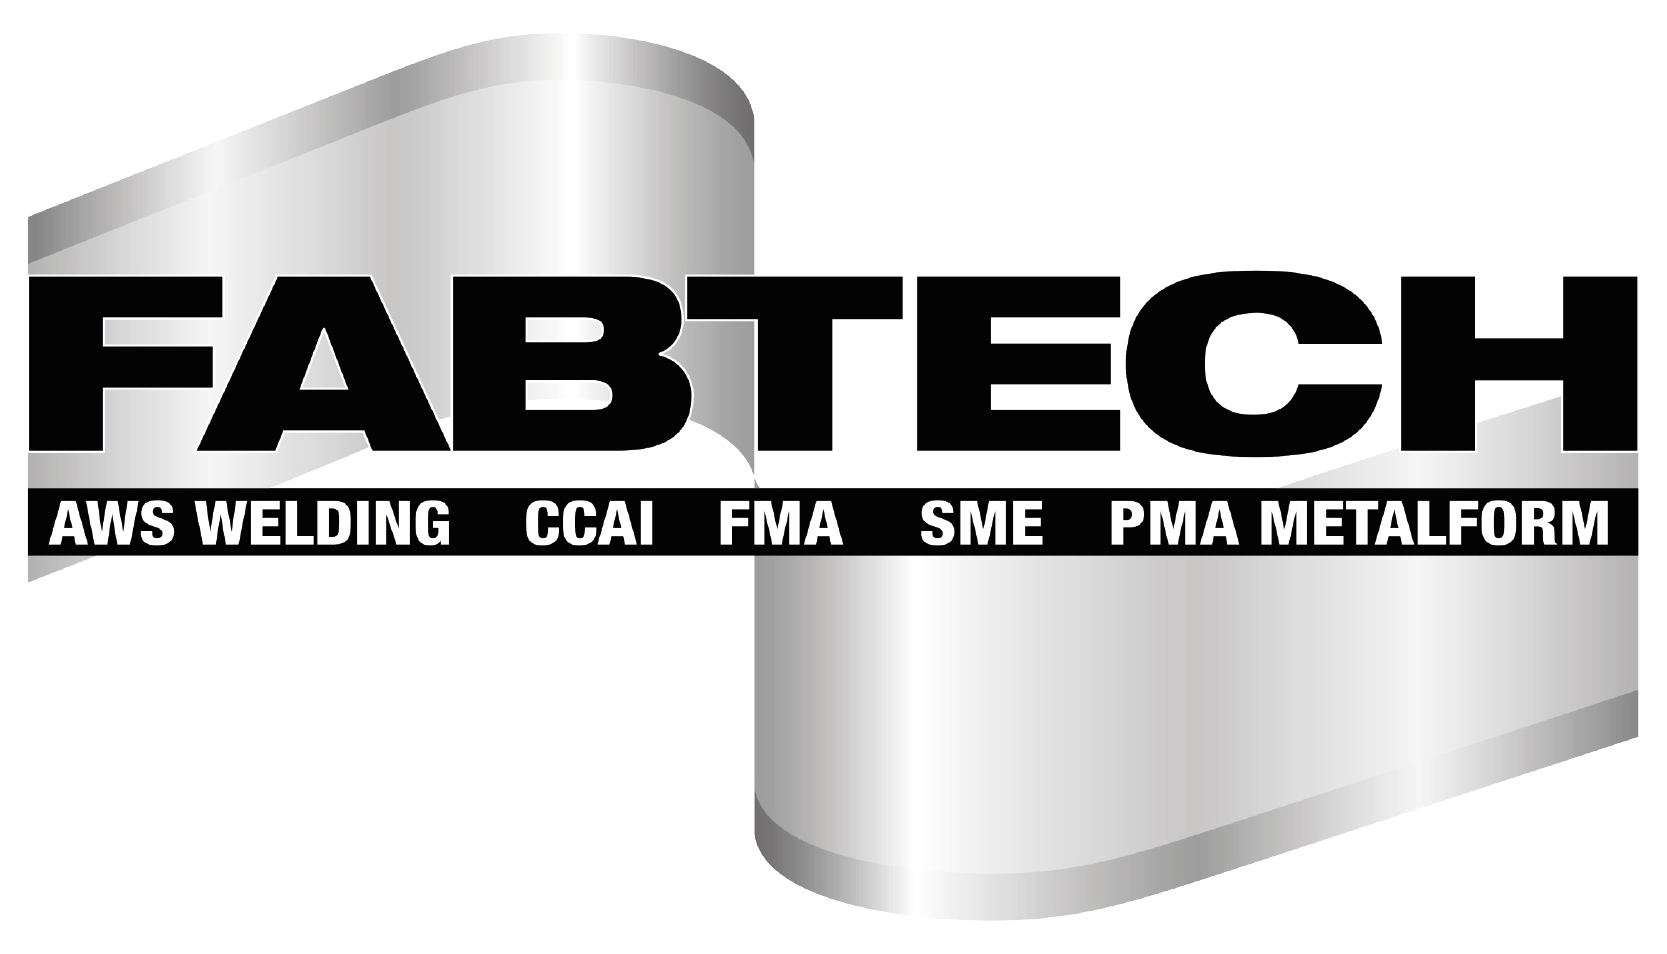 DANOBAT sheet metal solutions to exhibiti at FABTECH 2015, from 5 to 7 May in Monterrey, Mexico